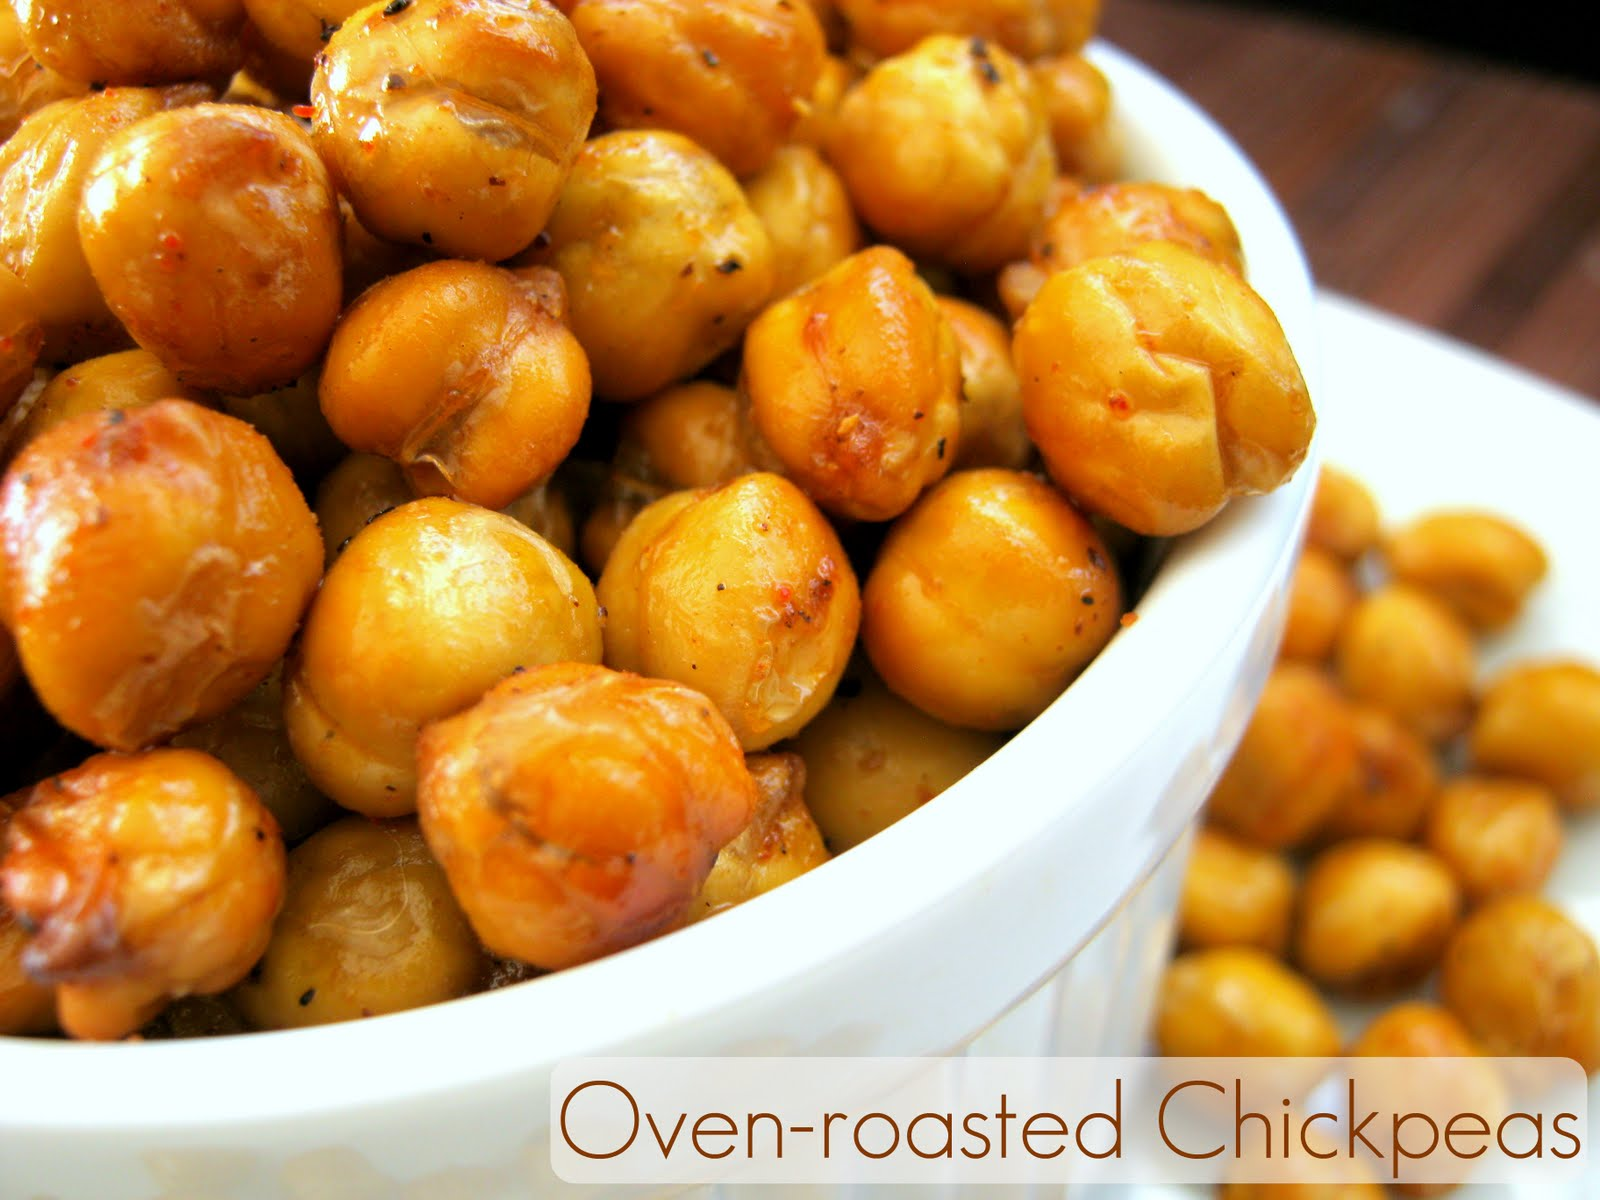 The Inner Gourmet: Fried Channa (Chickpeas) Made Healthier